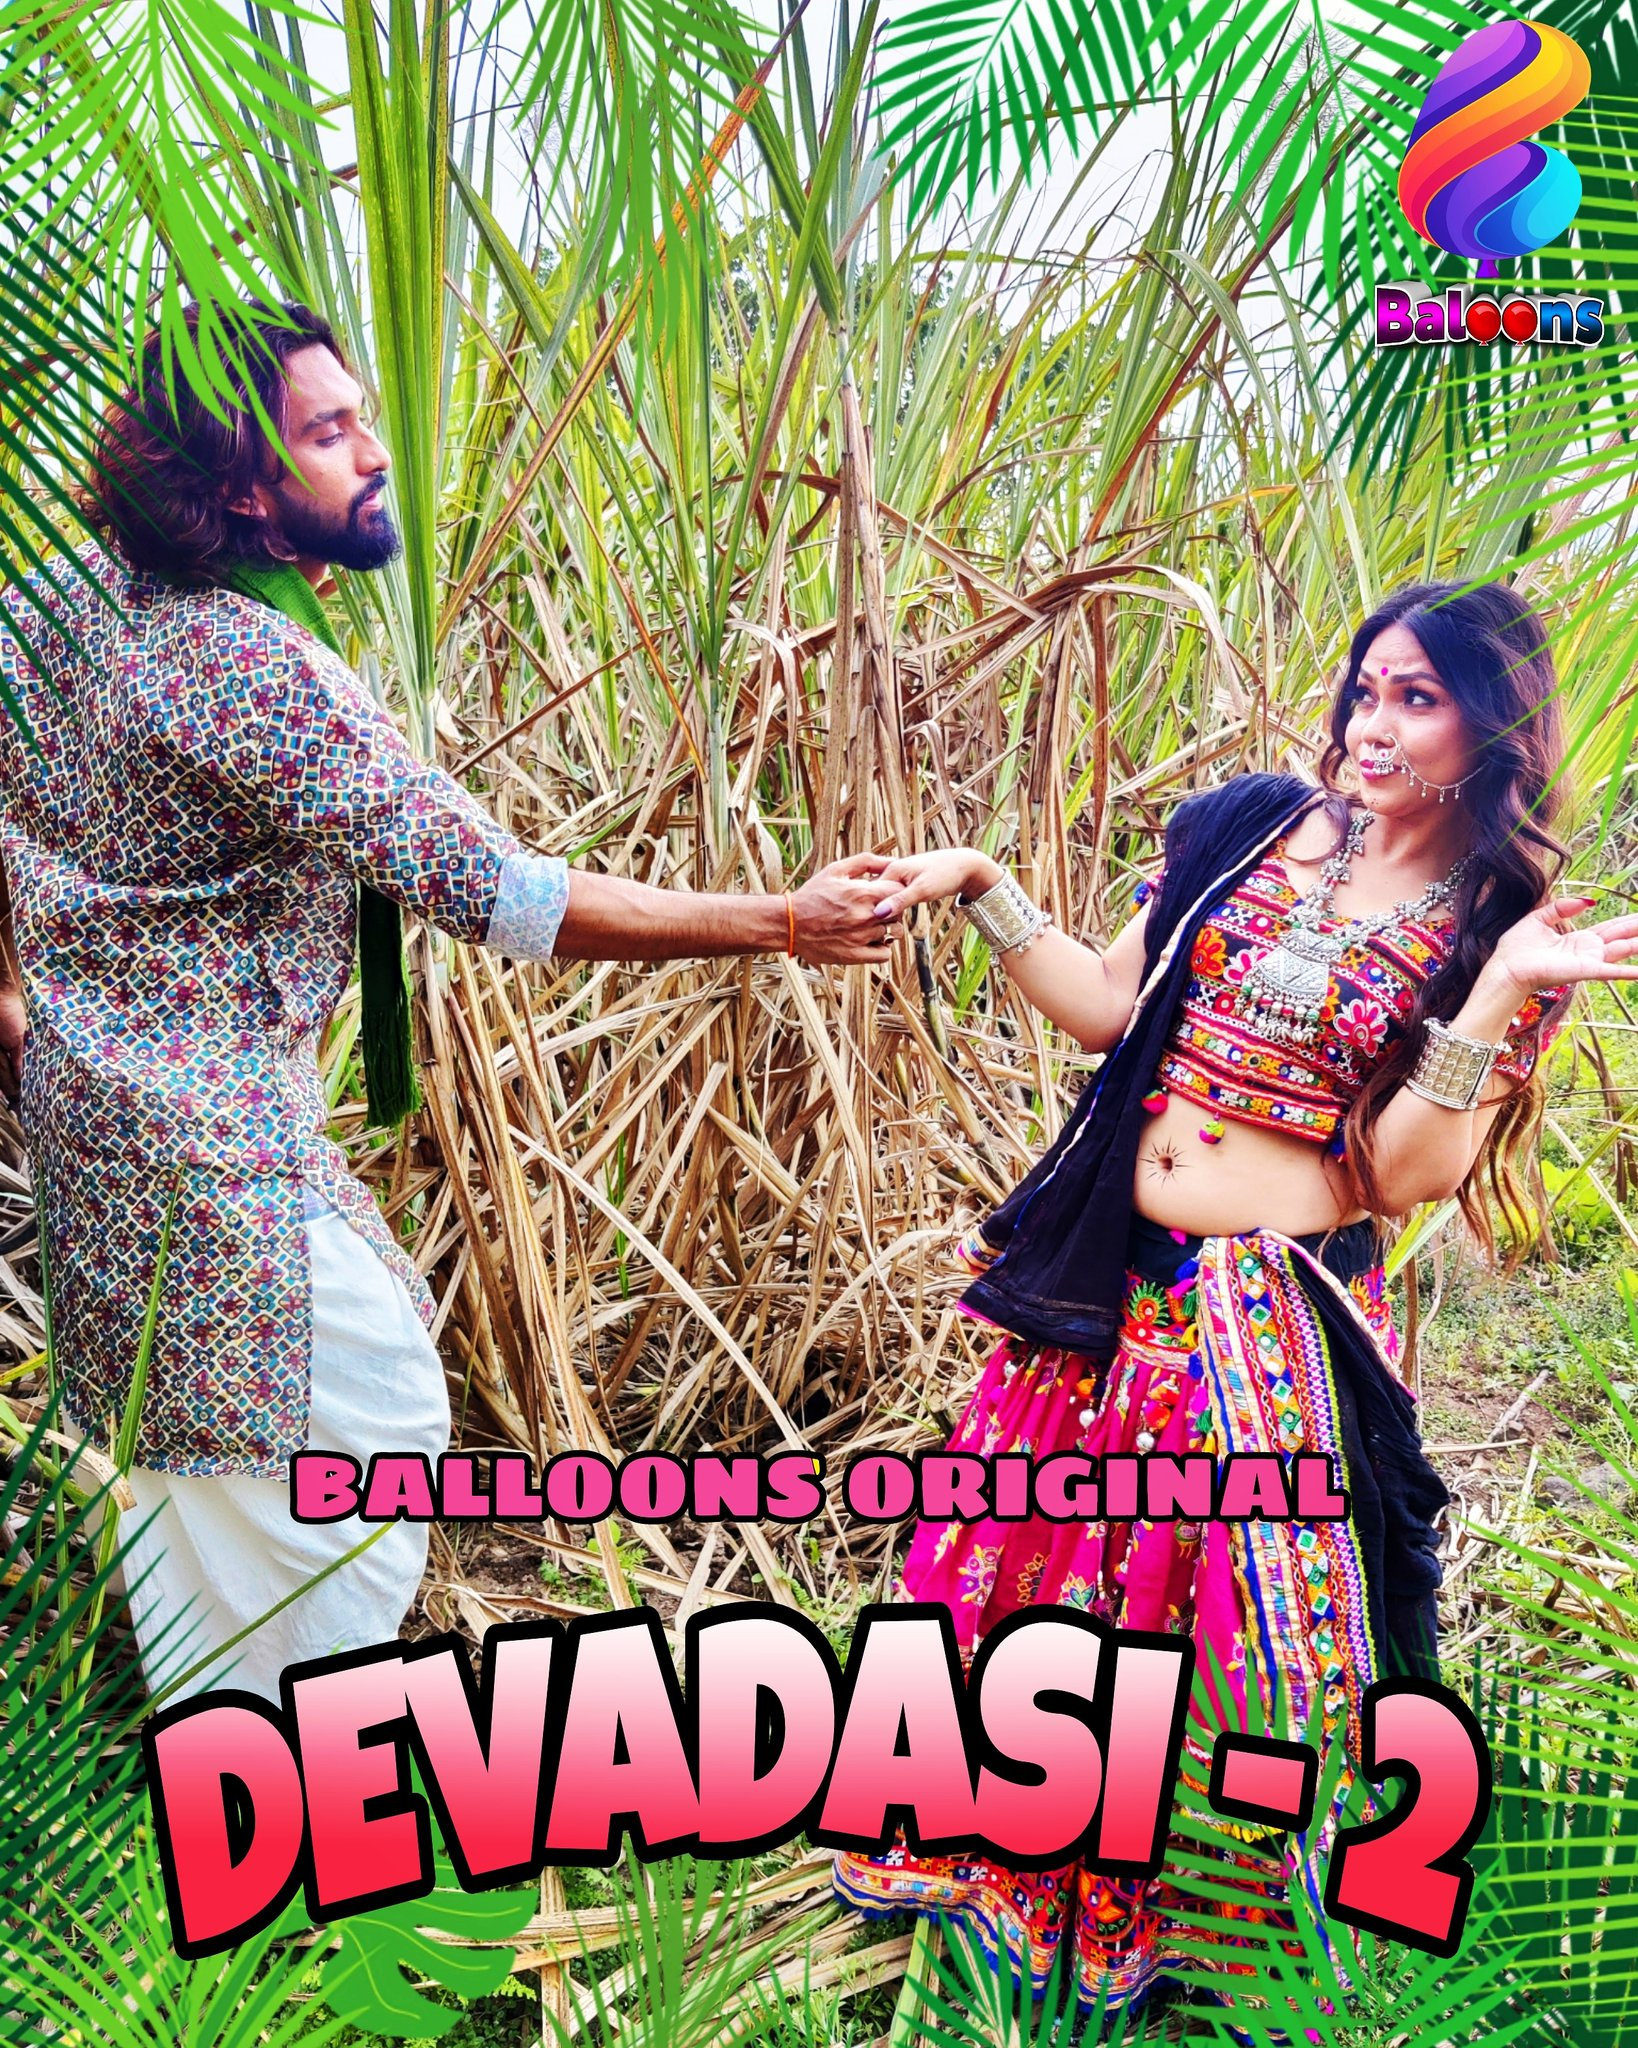 Devadasi 2021 S02E03 Hindi Balloons Original Web Series 720p HDRip 162MB Download